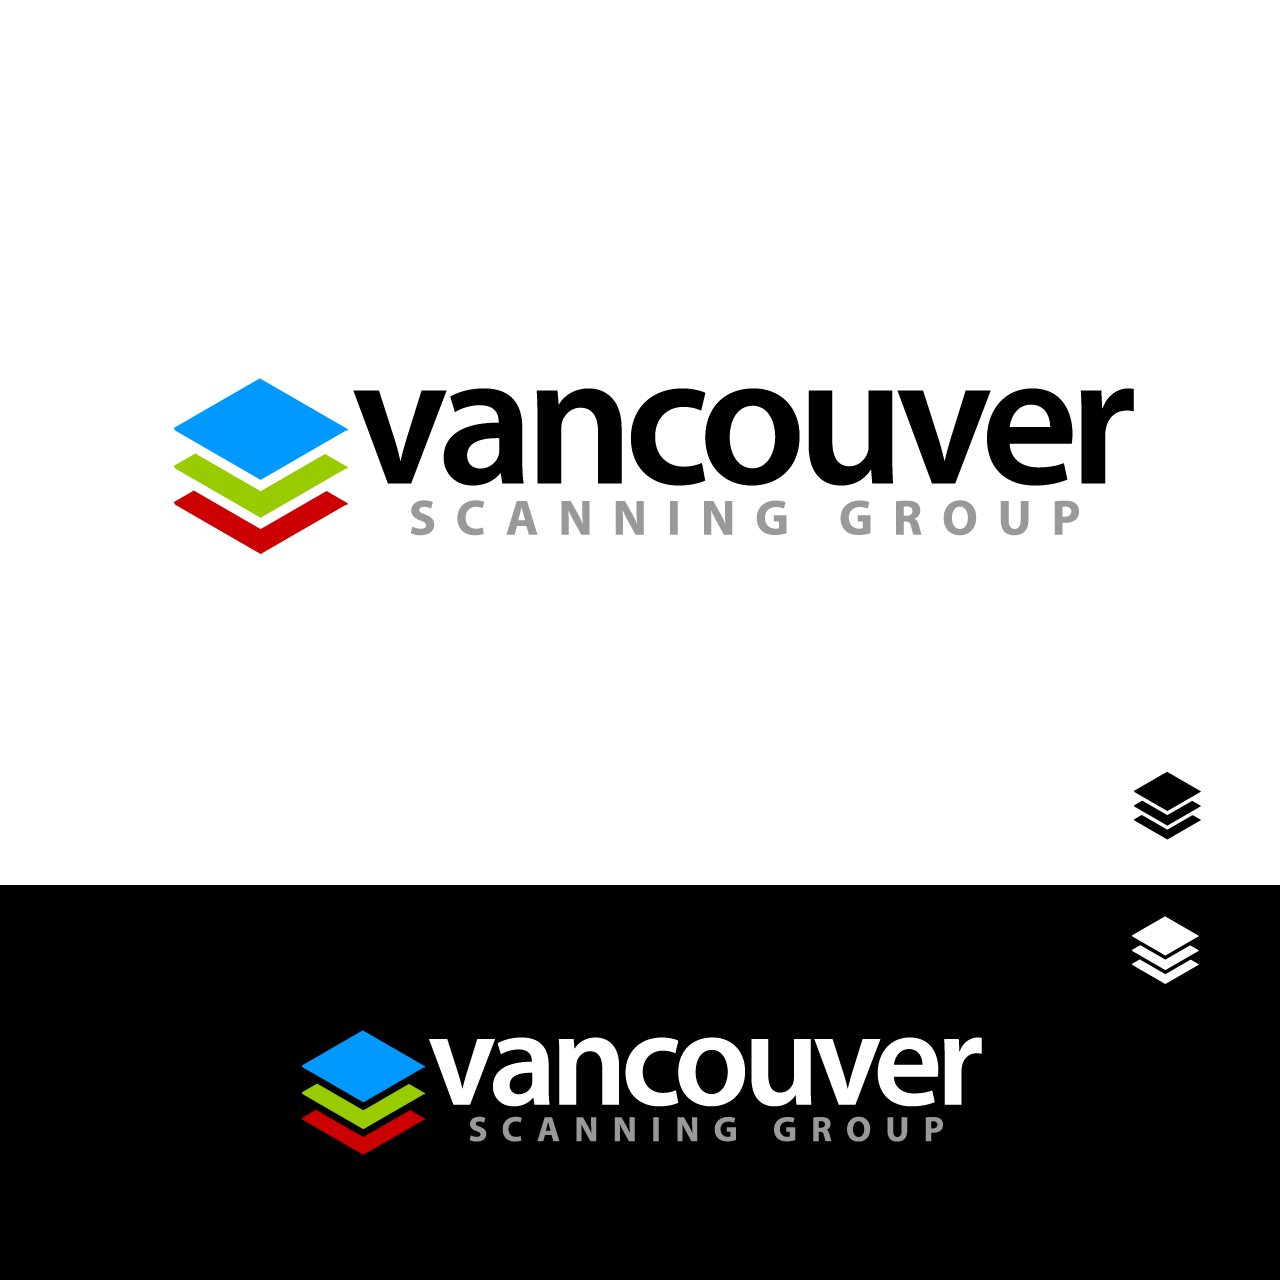 Logo Design by umxca - Entry No. 134 in the Logo Design Contest Vancouver Scanning Group.